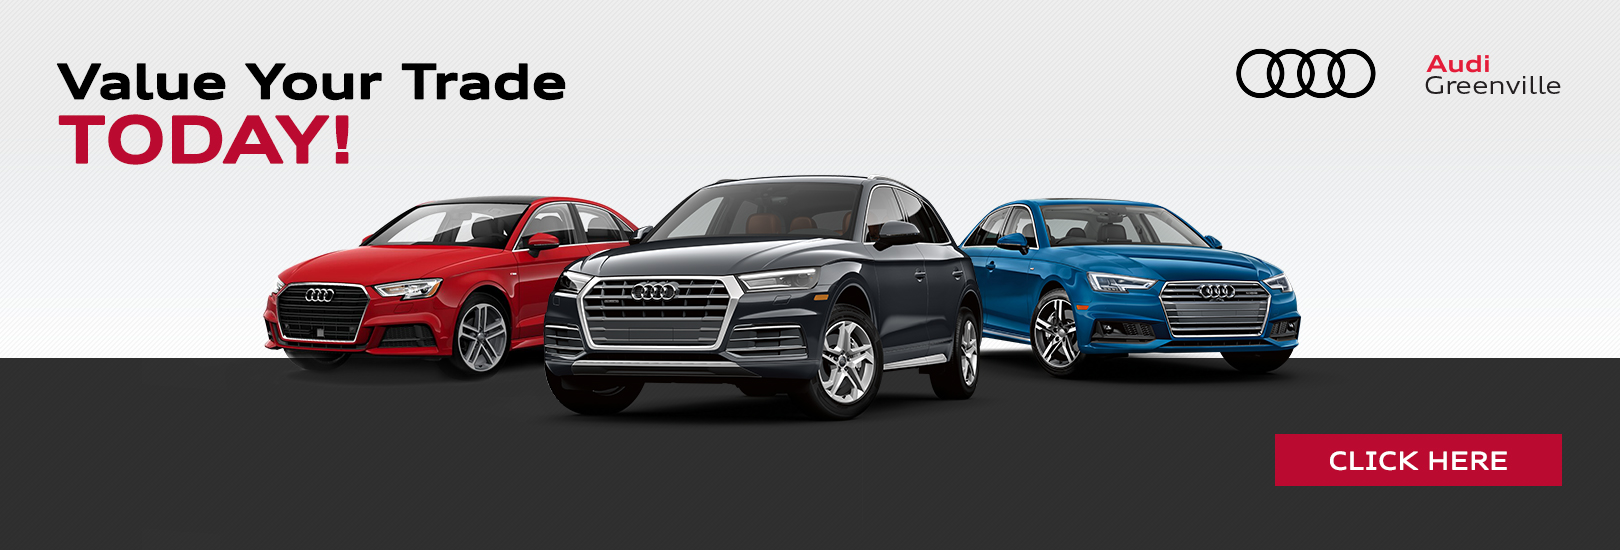 Value Your Trade Now at Audi Greenville in Greenville SC